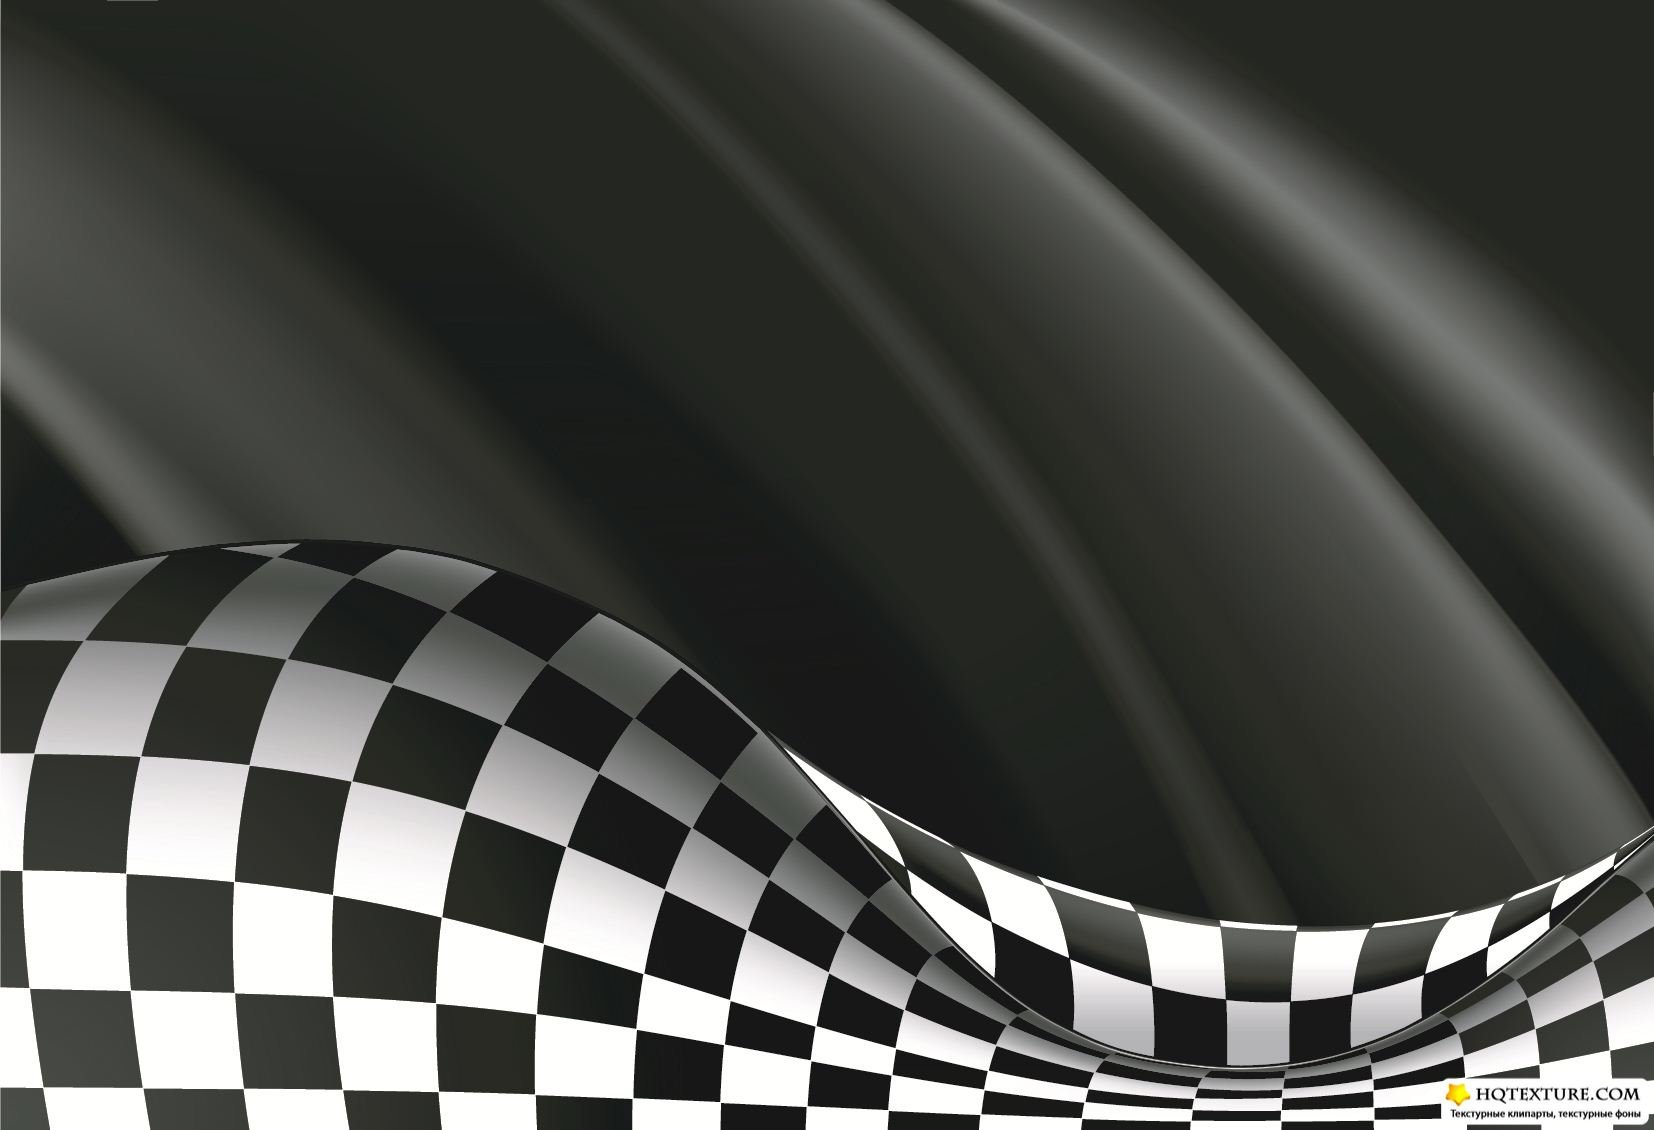 download Racing Backgrounds Vector [1654x1130] for your 1654x1130